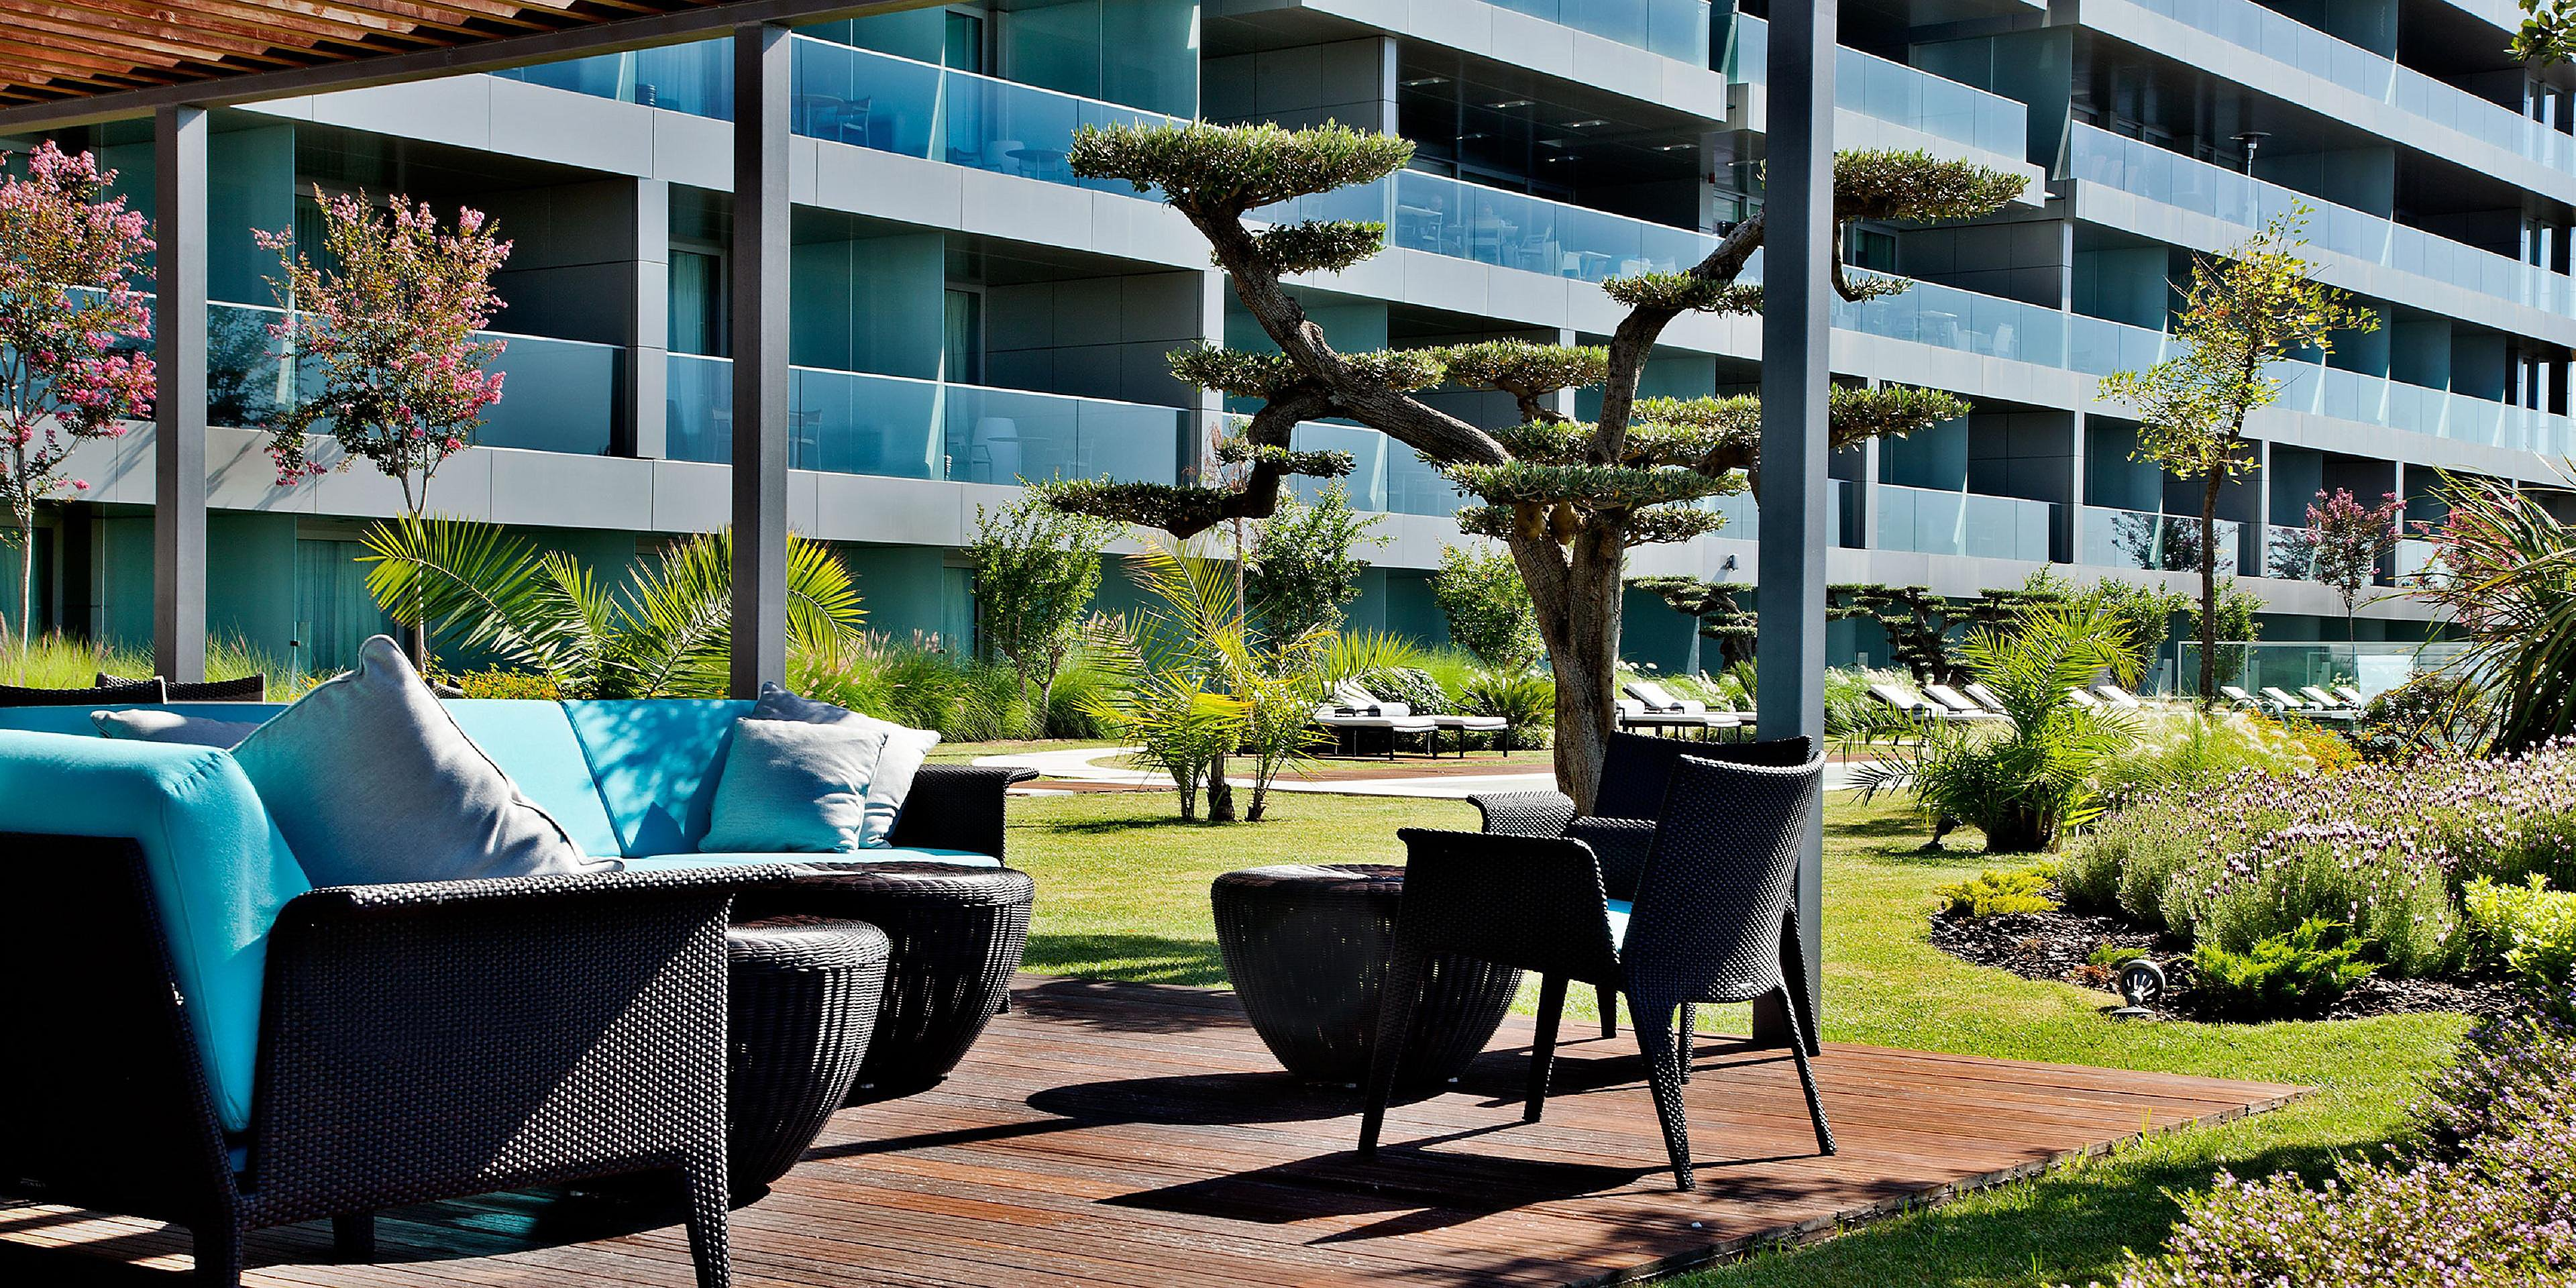 Best Hotels in Central Portugal hotels Best Hotels in Central Portugal intercontinental estoril 4036119961 2x1